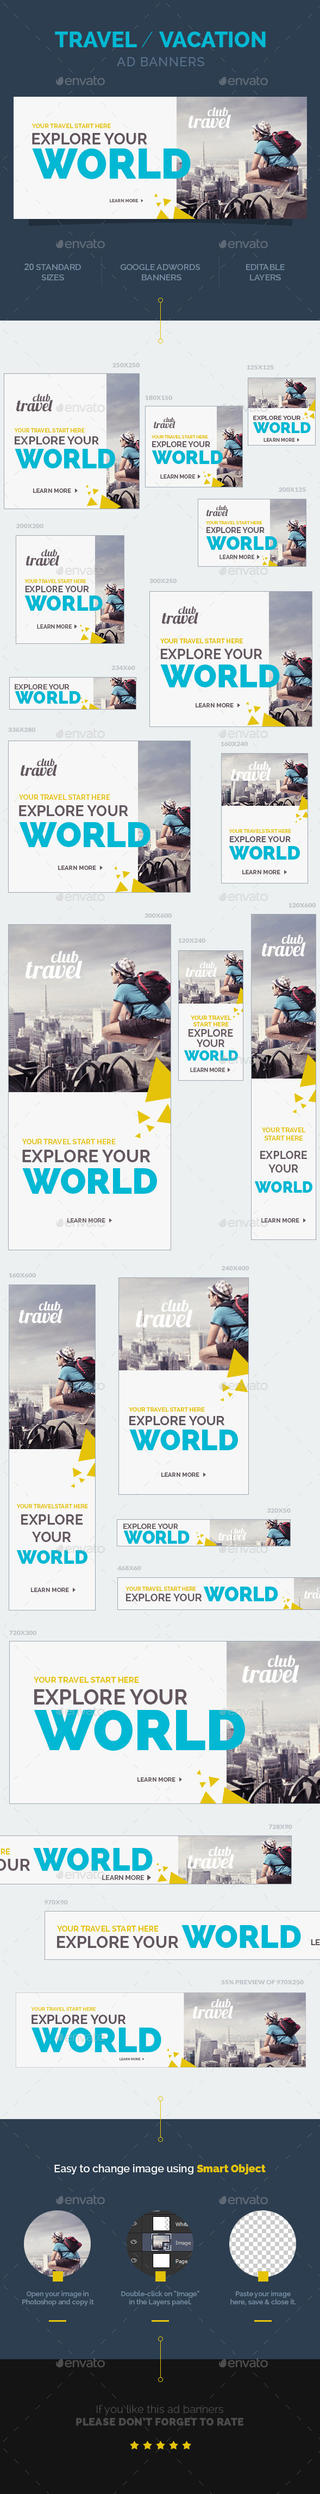 Travel / Vacation Ad Banners by webduckdesign